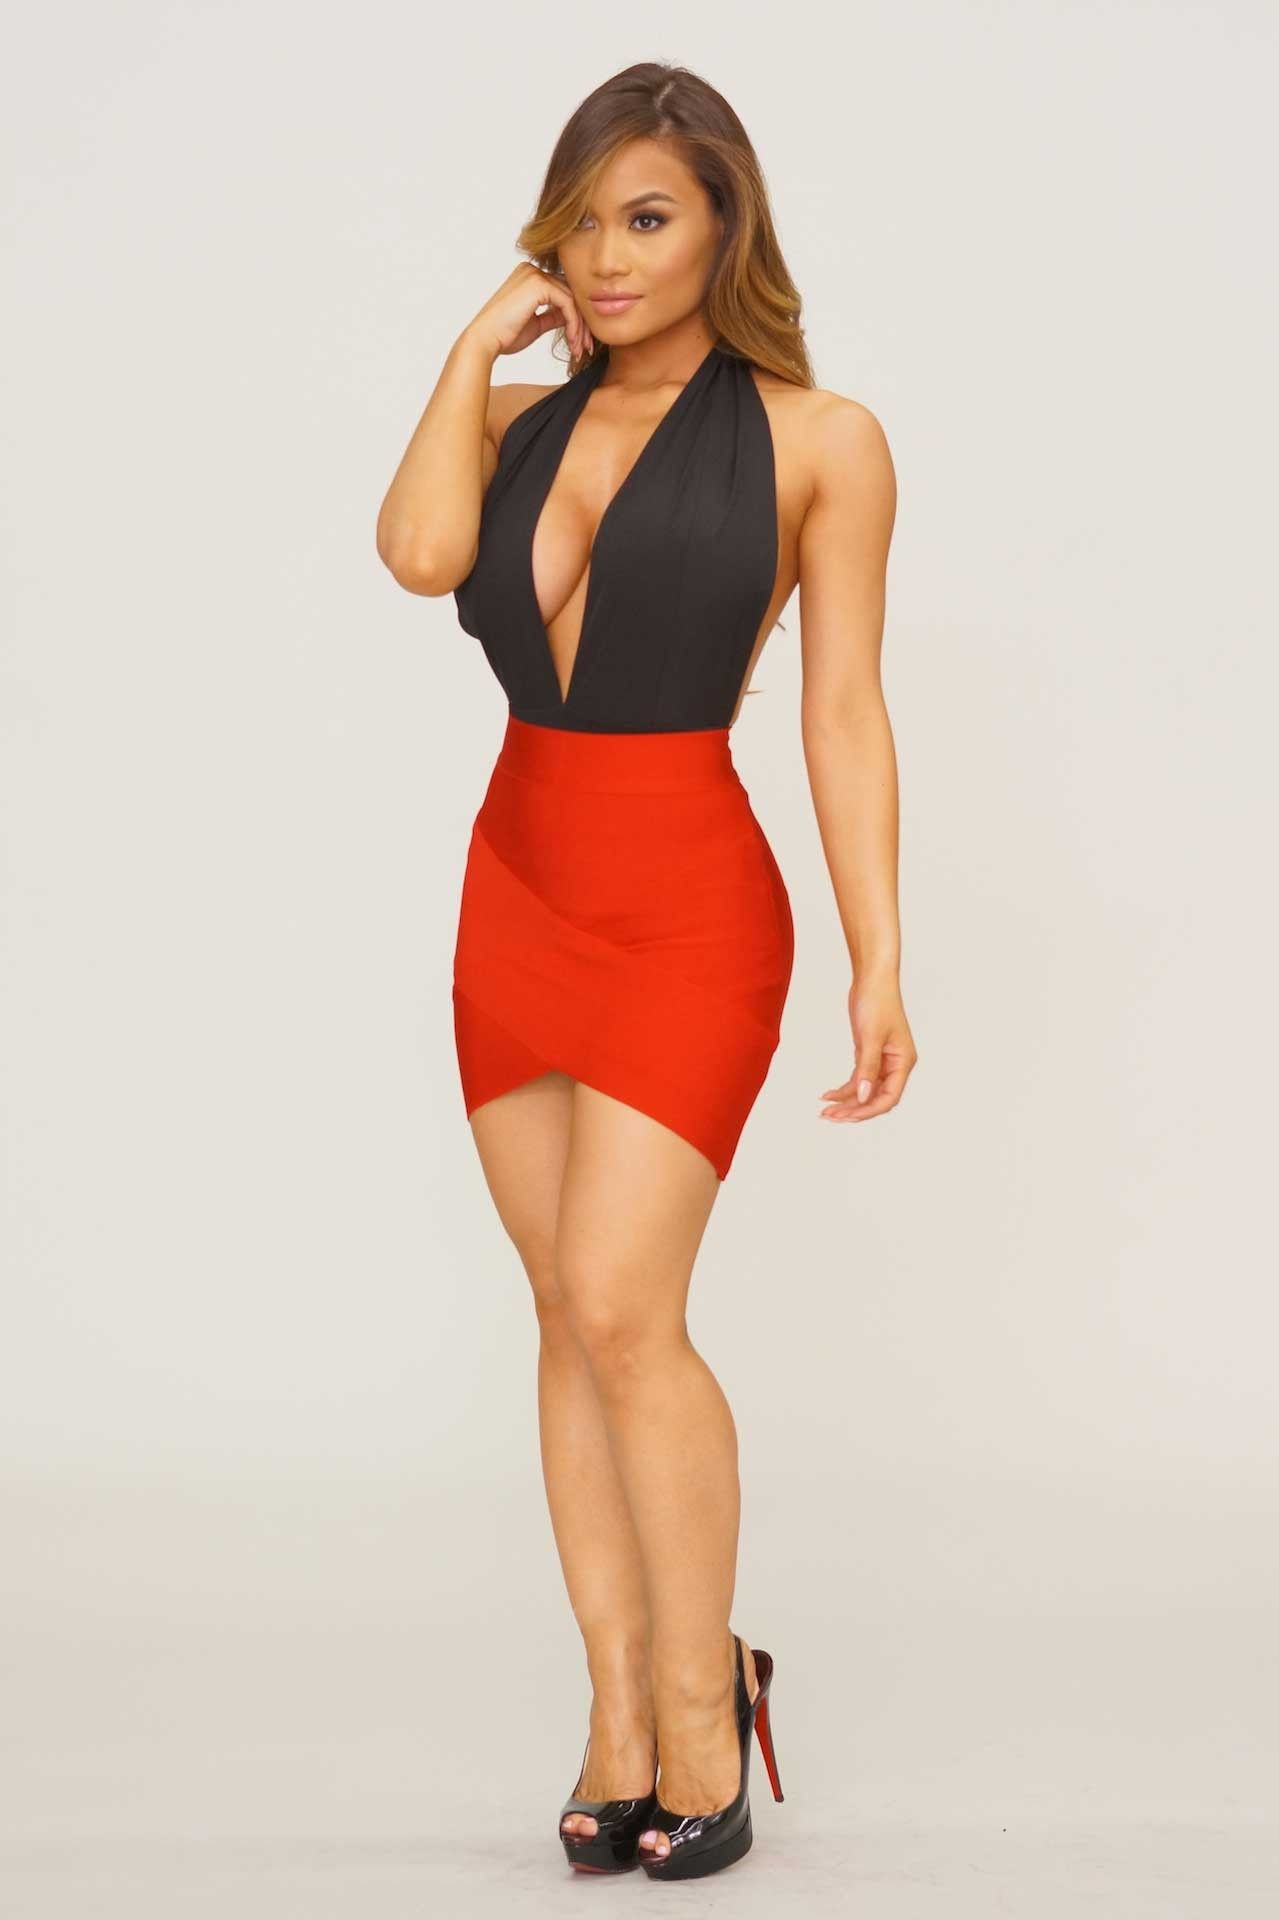 arched up bandage skirt - red   new arrivals - may   pinterest